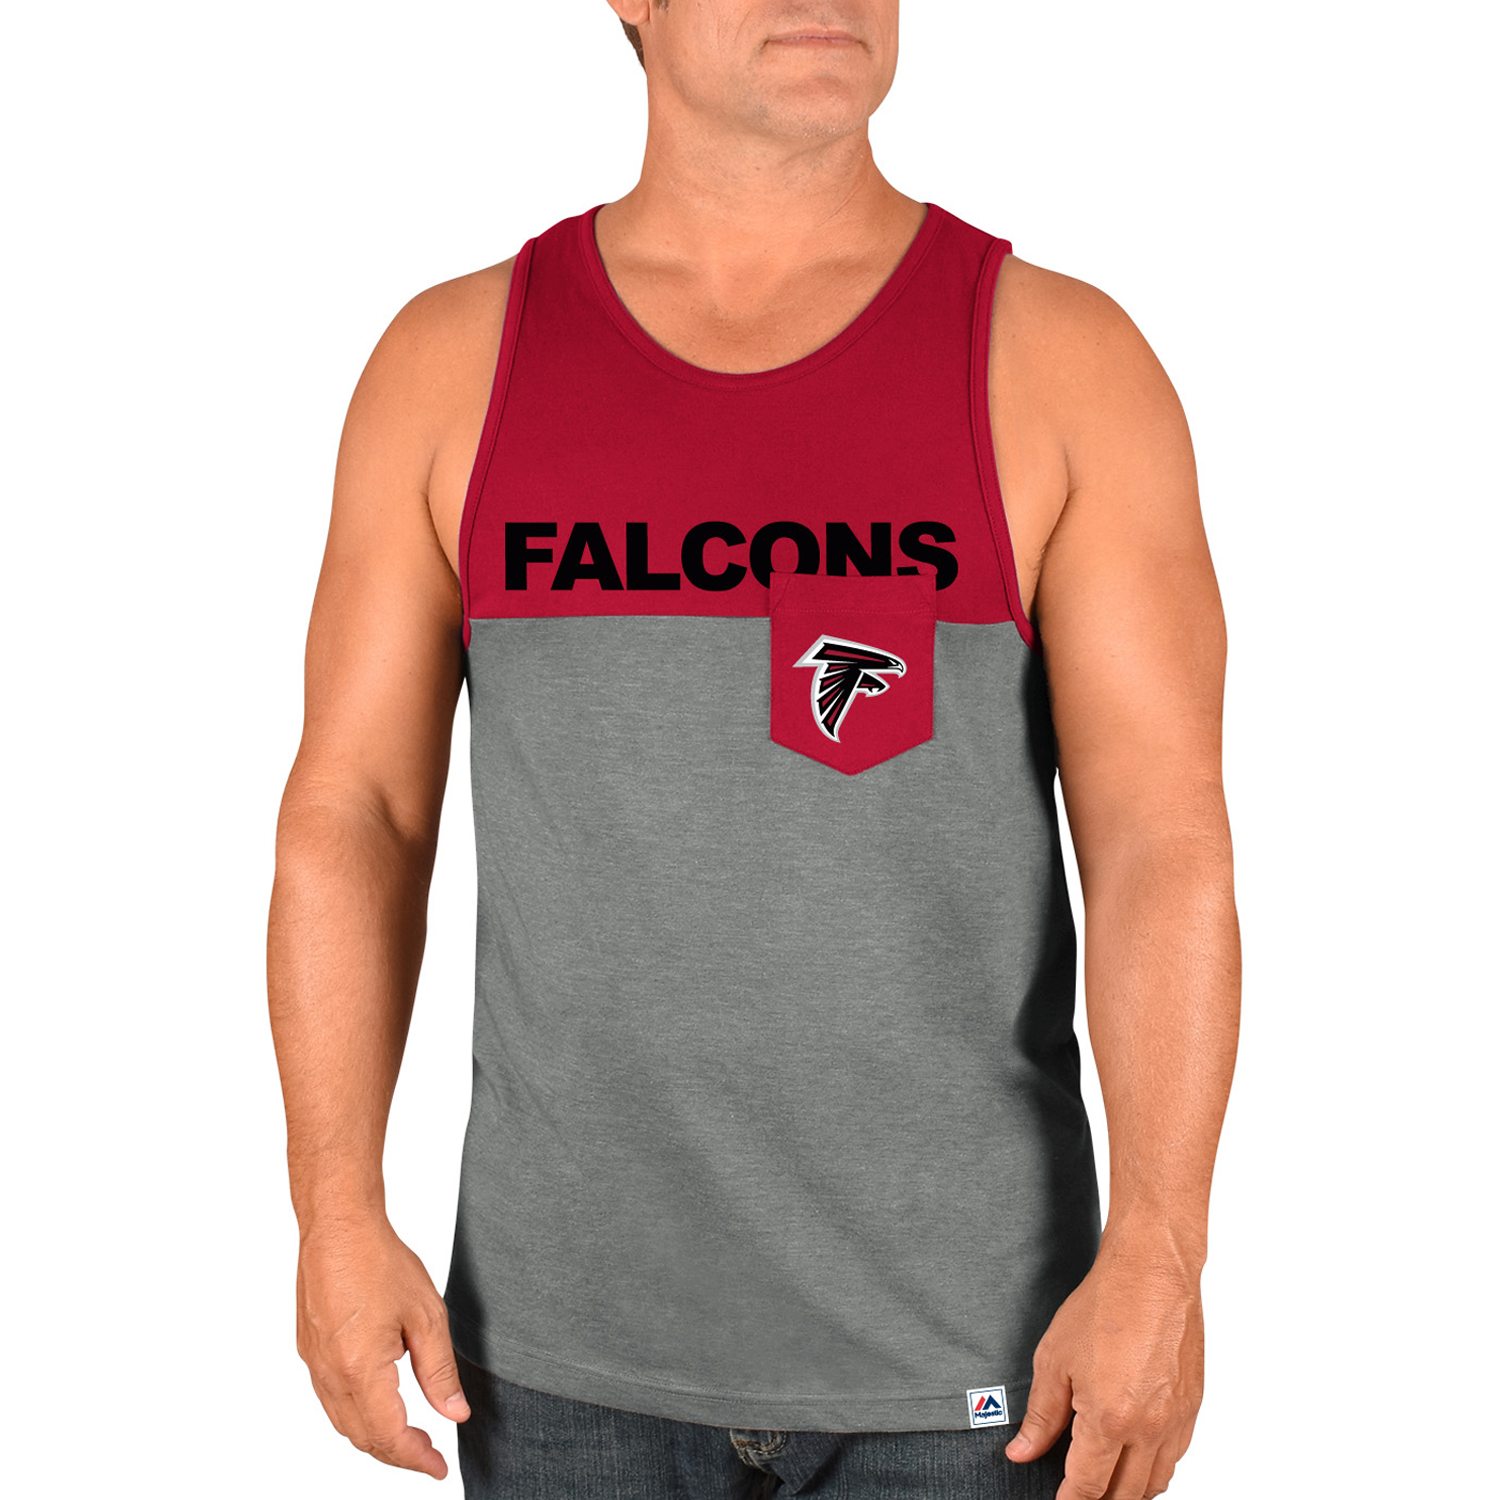 Atlanta Falcons Majestic Throw the Towel Tank Top - Heathered Gray/Red - XXL